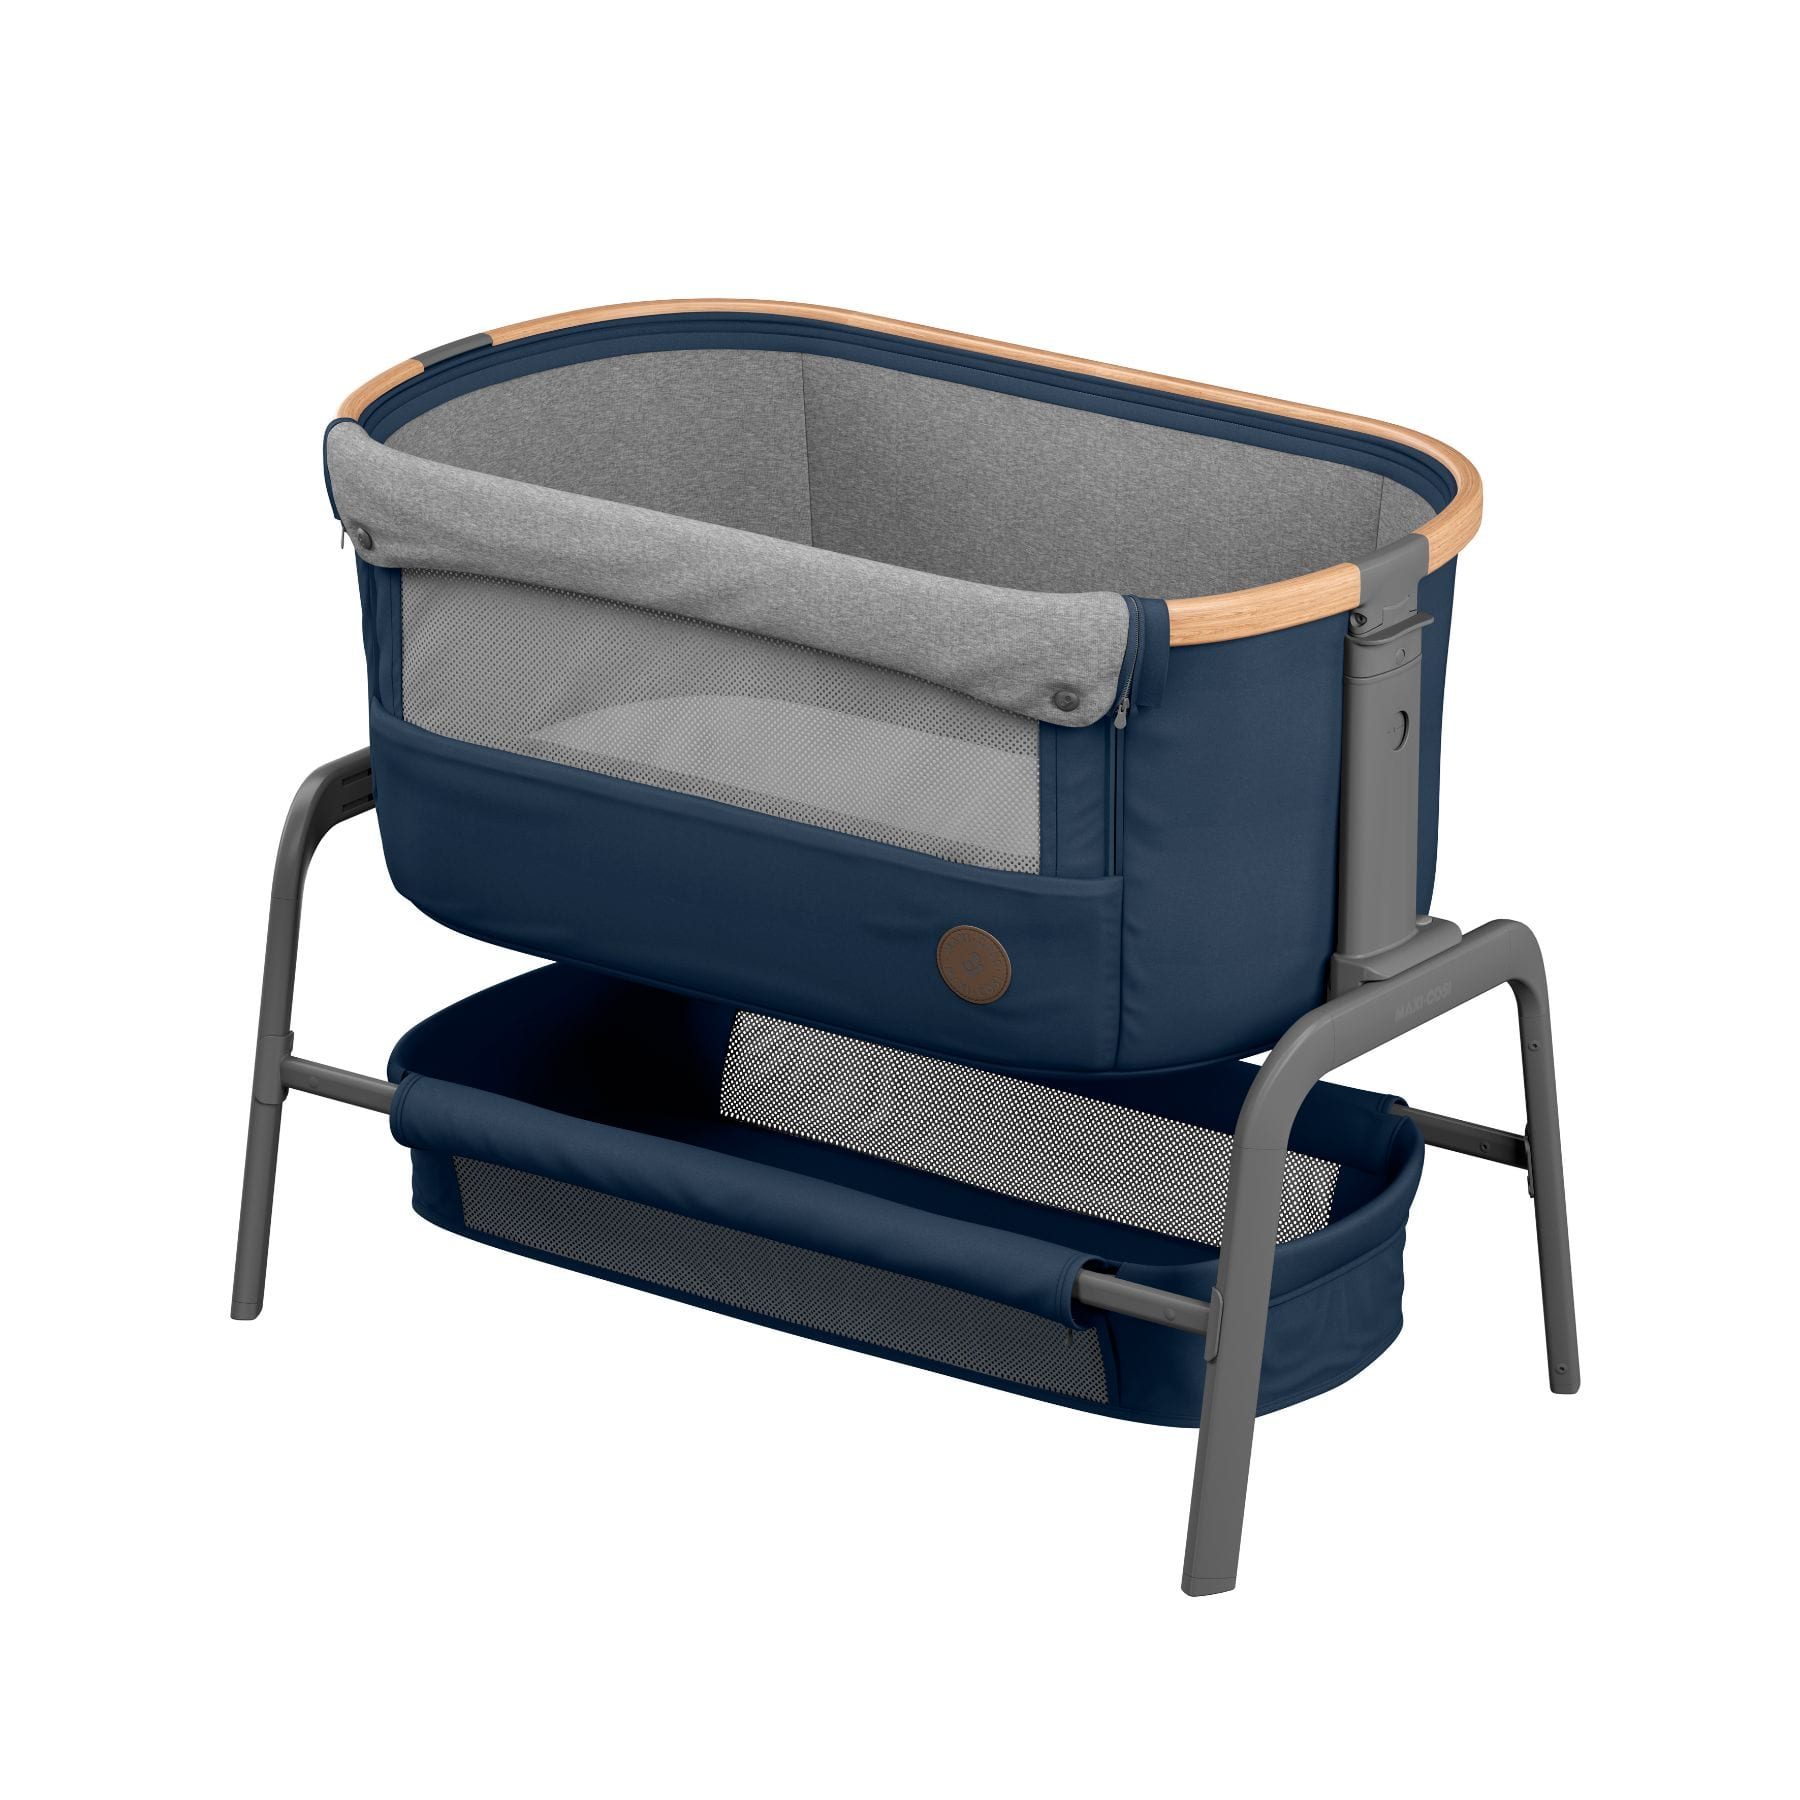 Maxi Cosi Iora Co-Sleeper - Essential Blue Gear Maxi Cosi